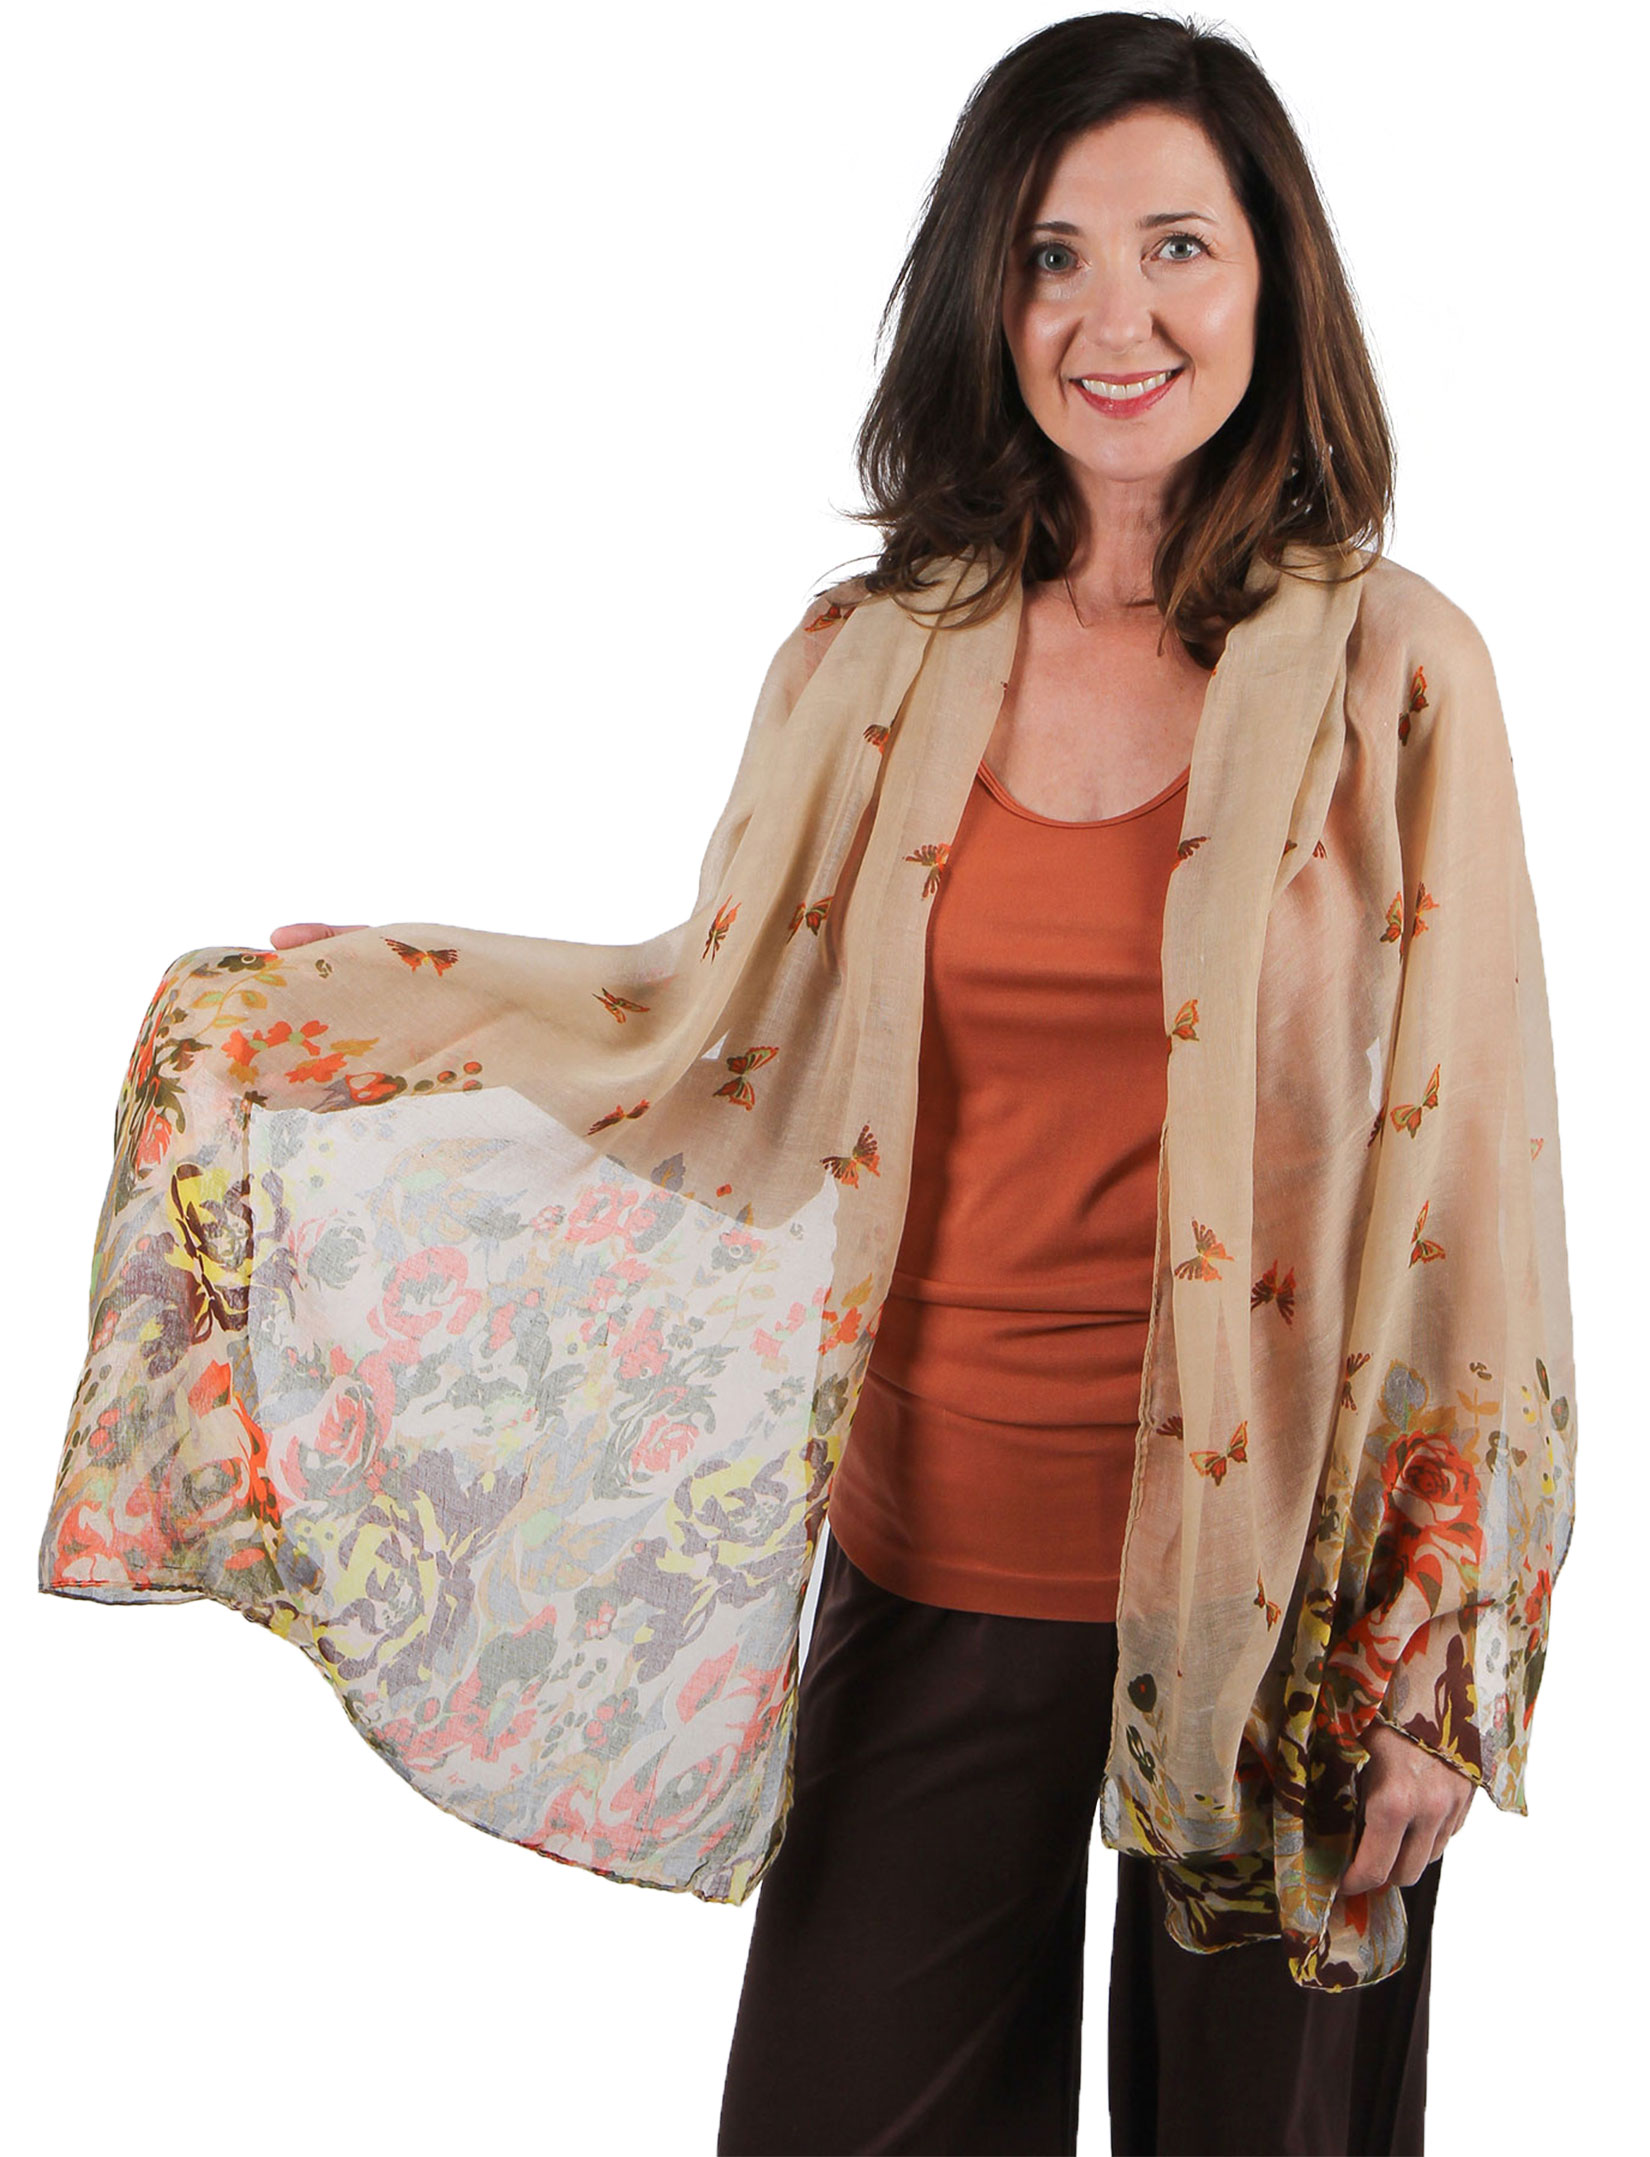 Big Scarves/Shawls - Butterfly Bottom 967*